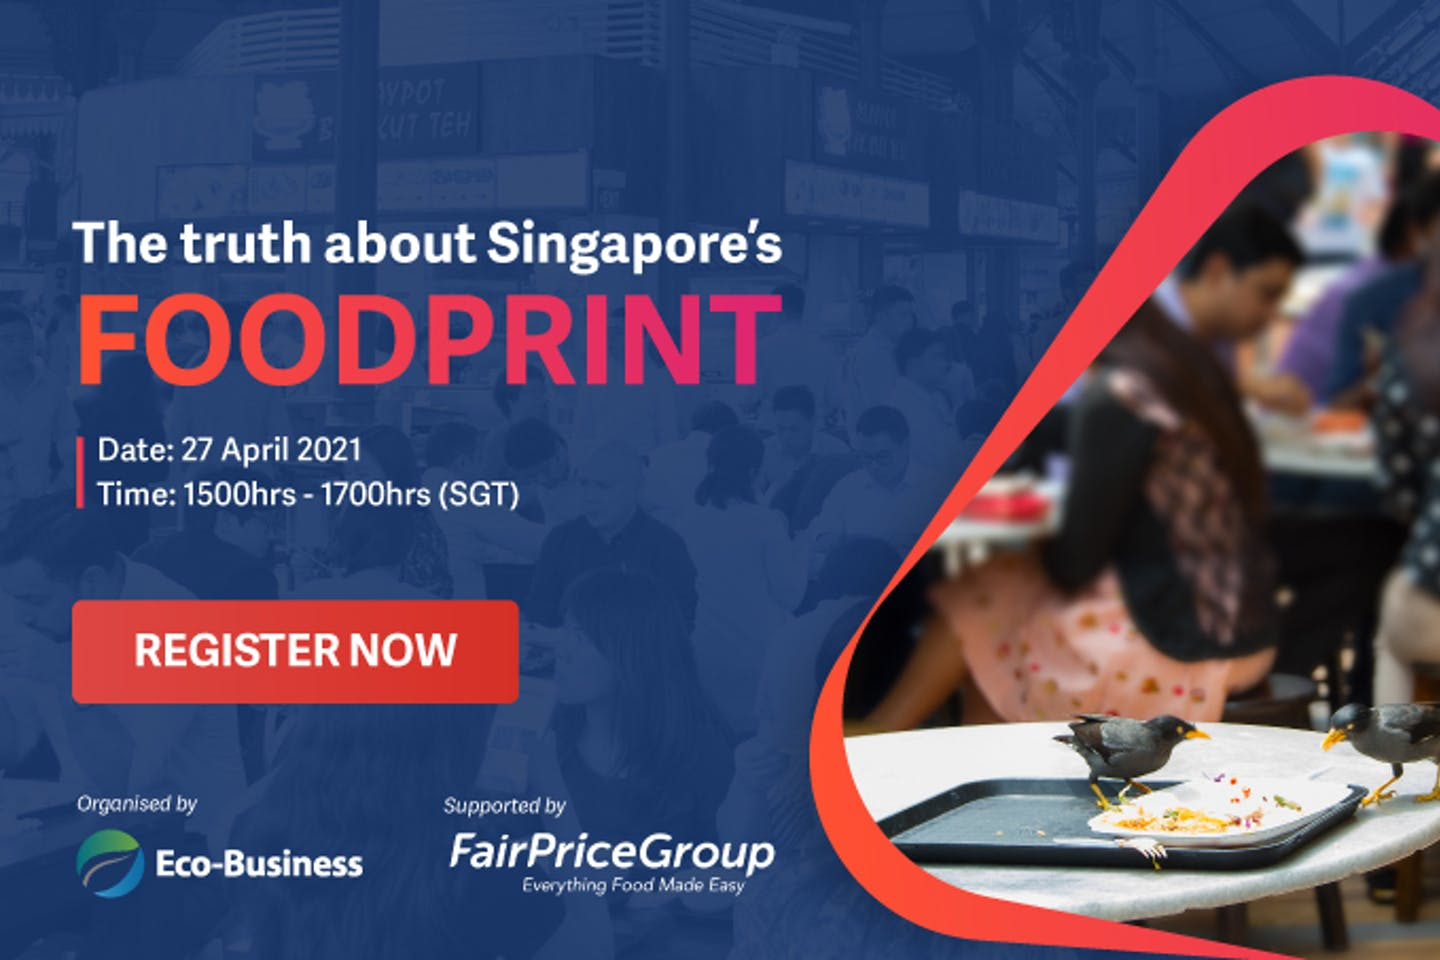 The truth about Singapore's foodprint